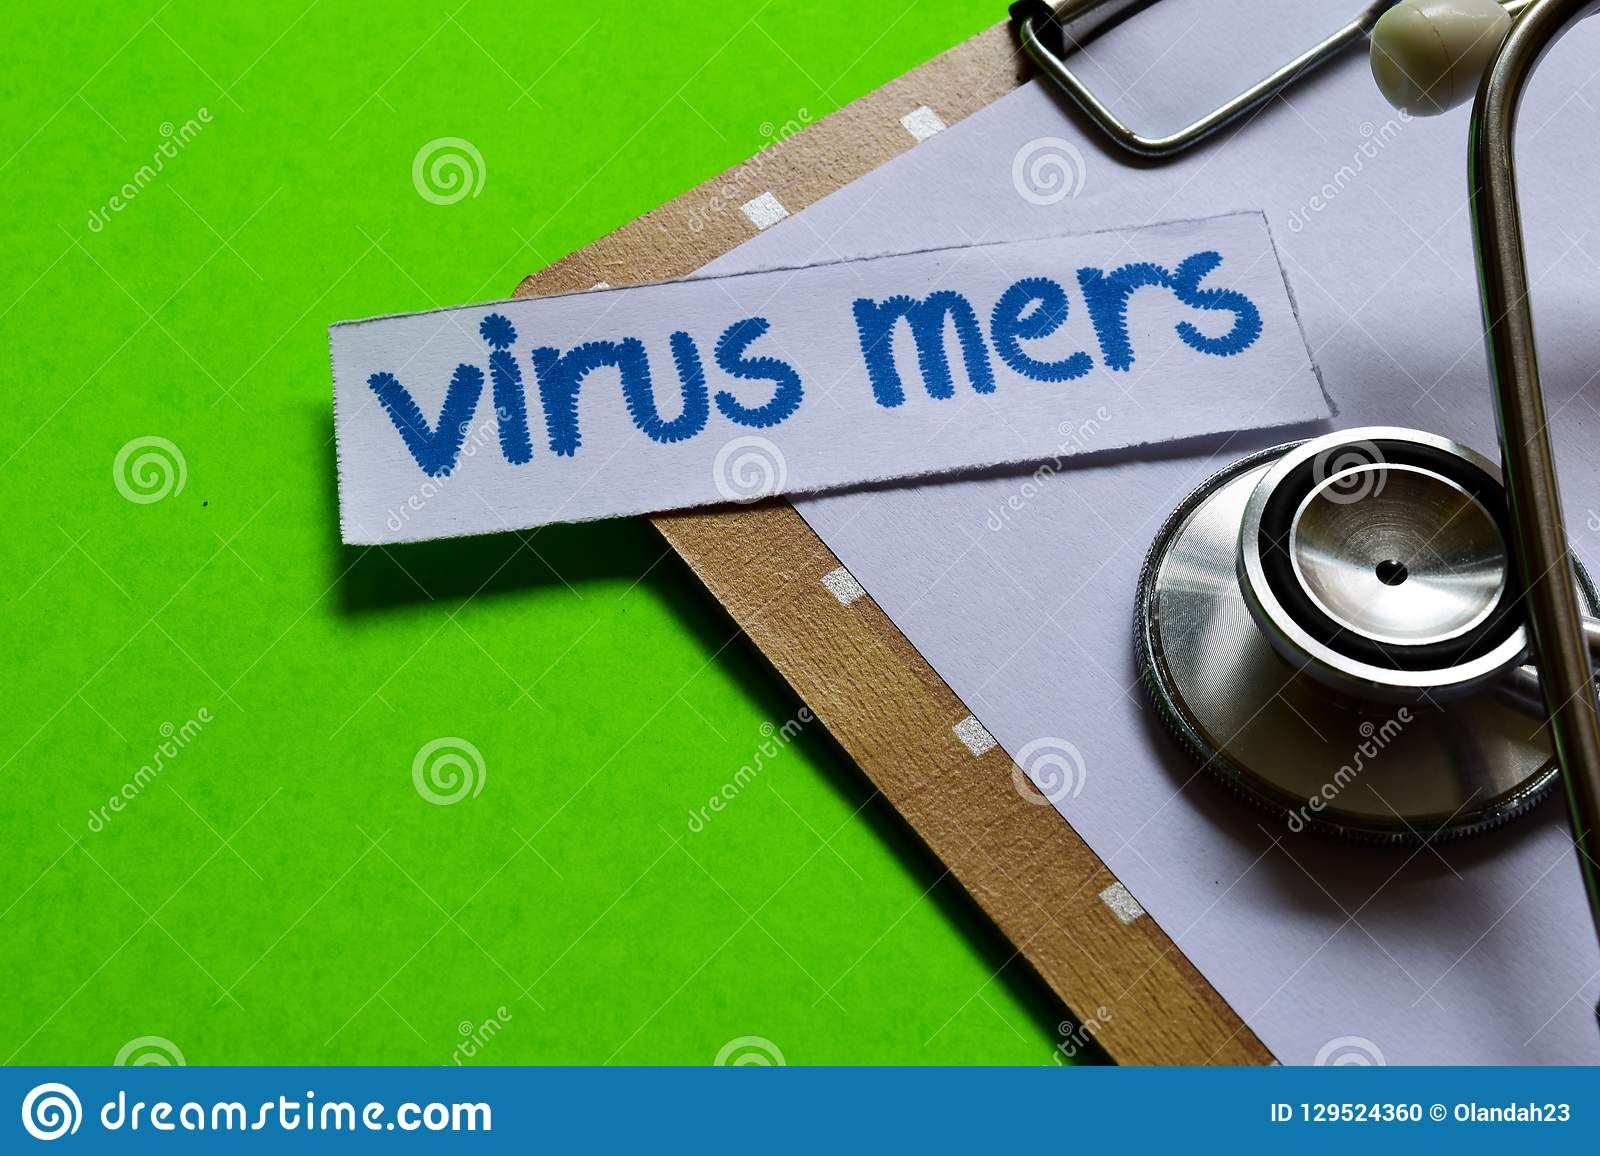 Virus mers on Healthcare concept with green background